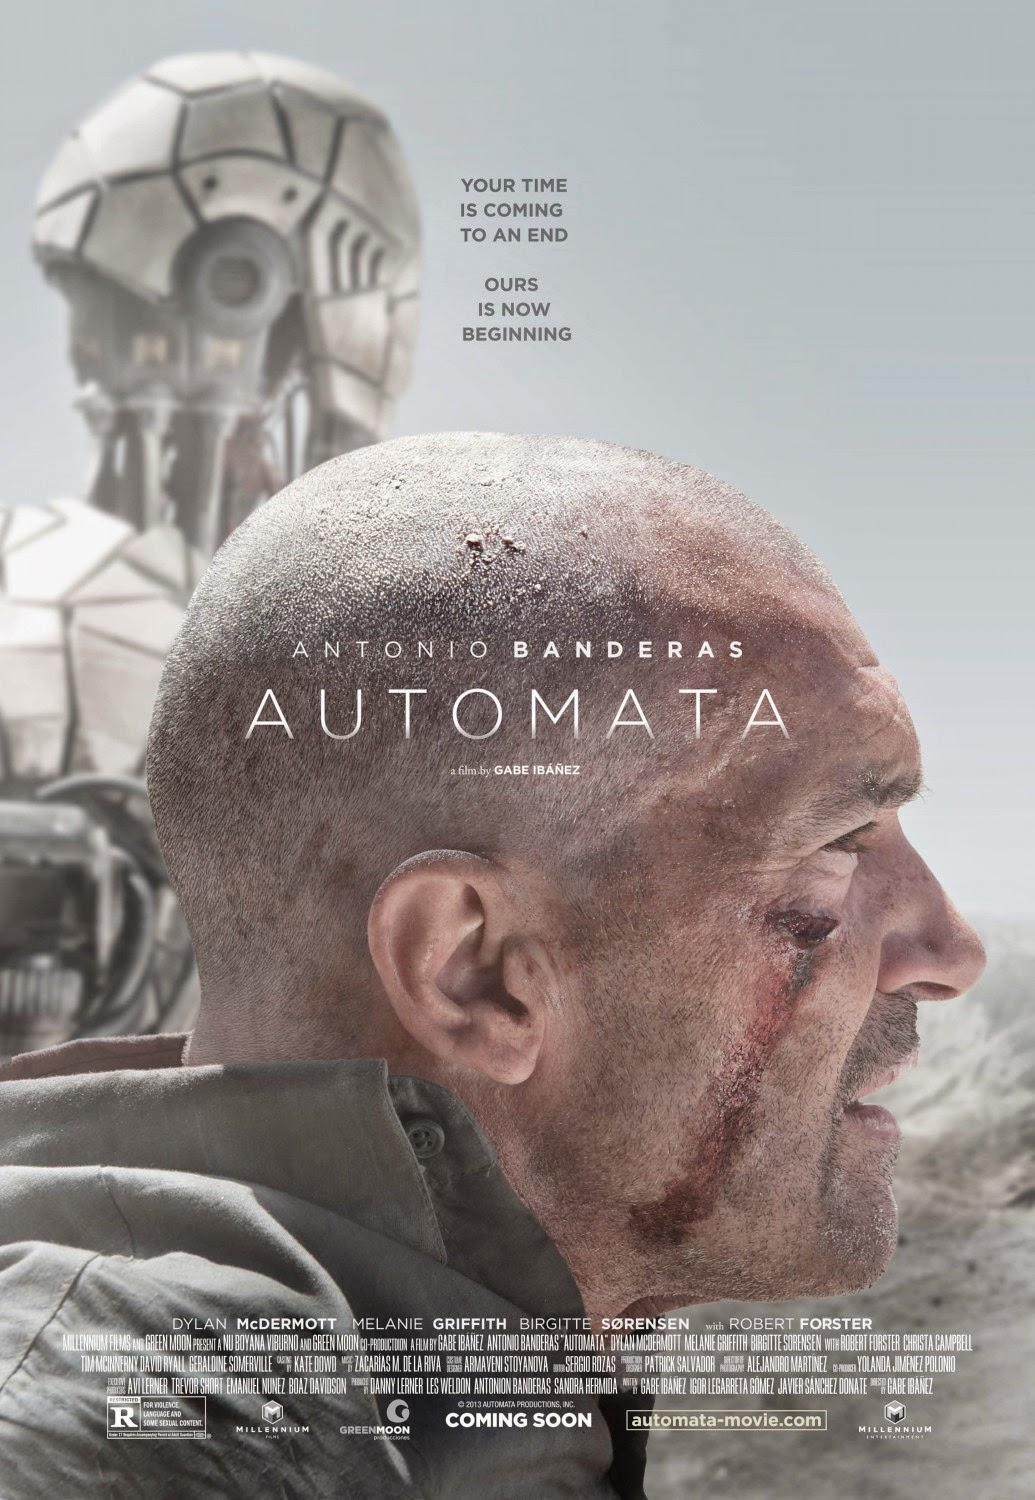 Autómata preview movie poster starring Antonio Banderas